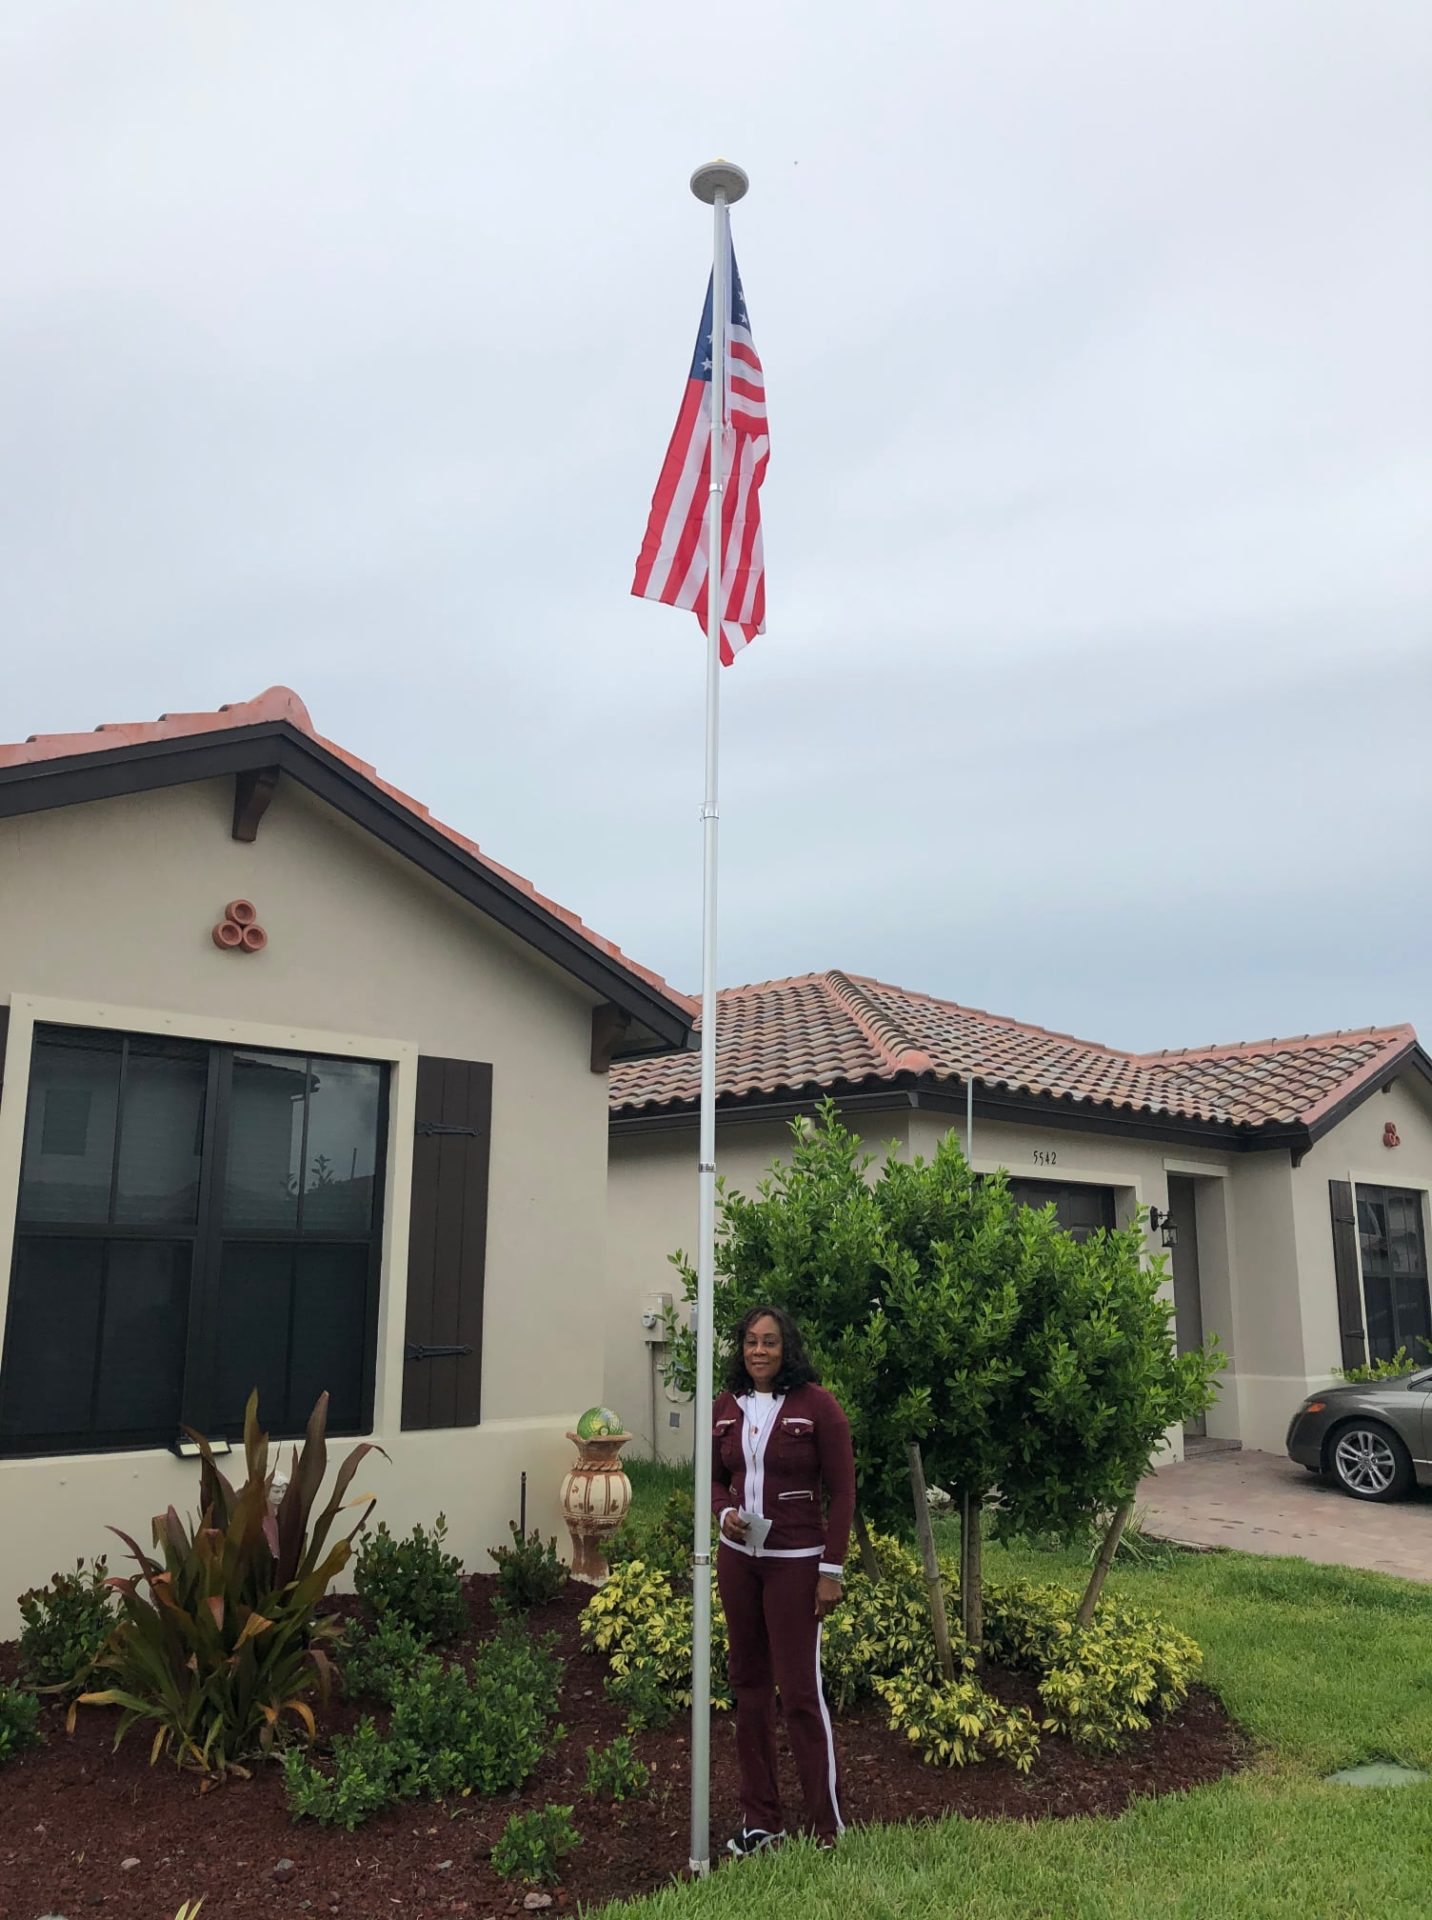 Woman standing outside home next to free-standing flagpole